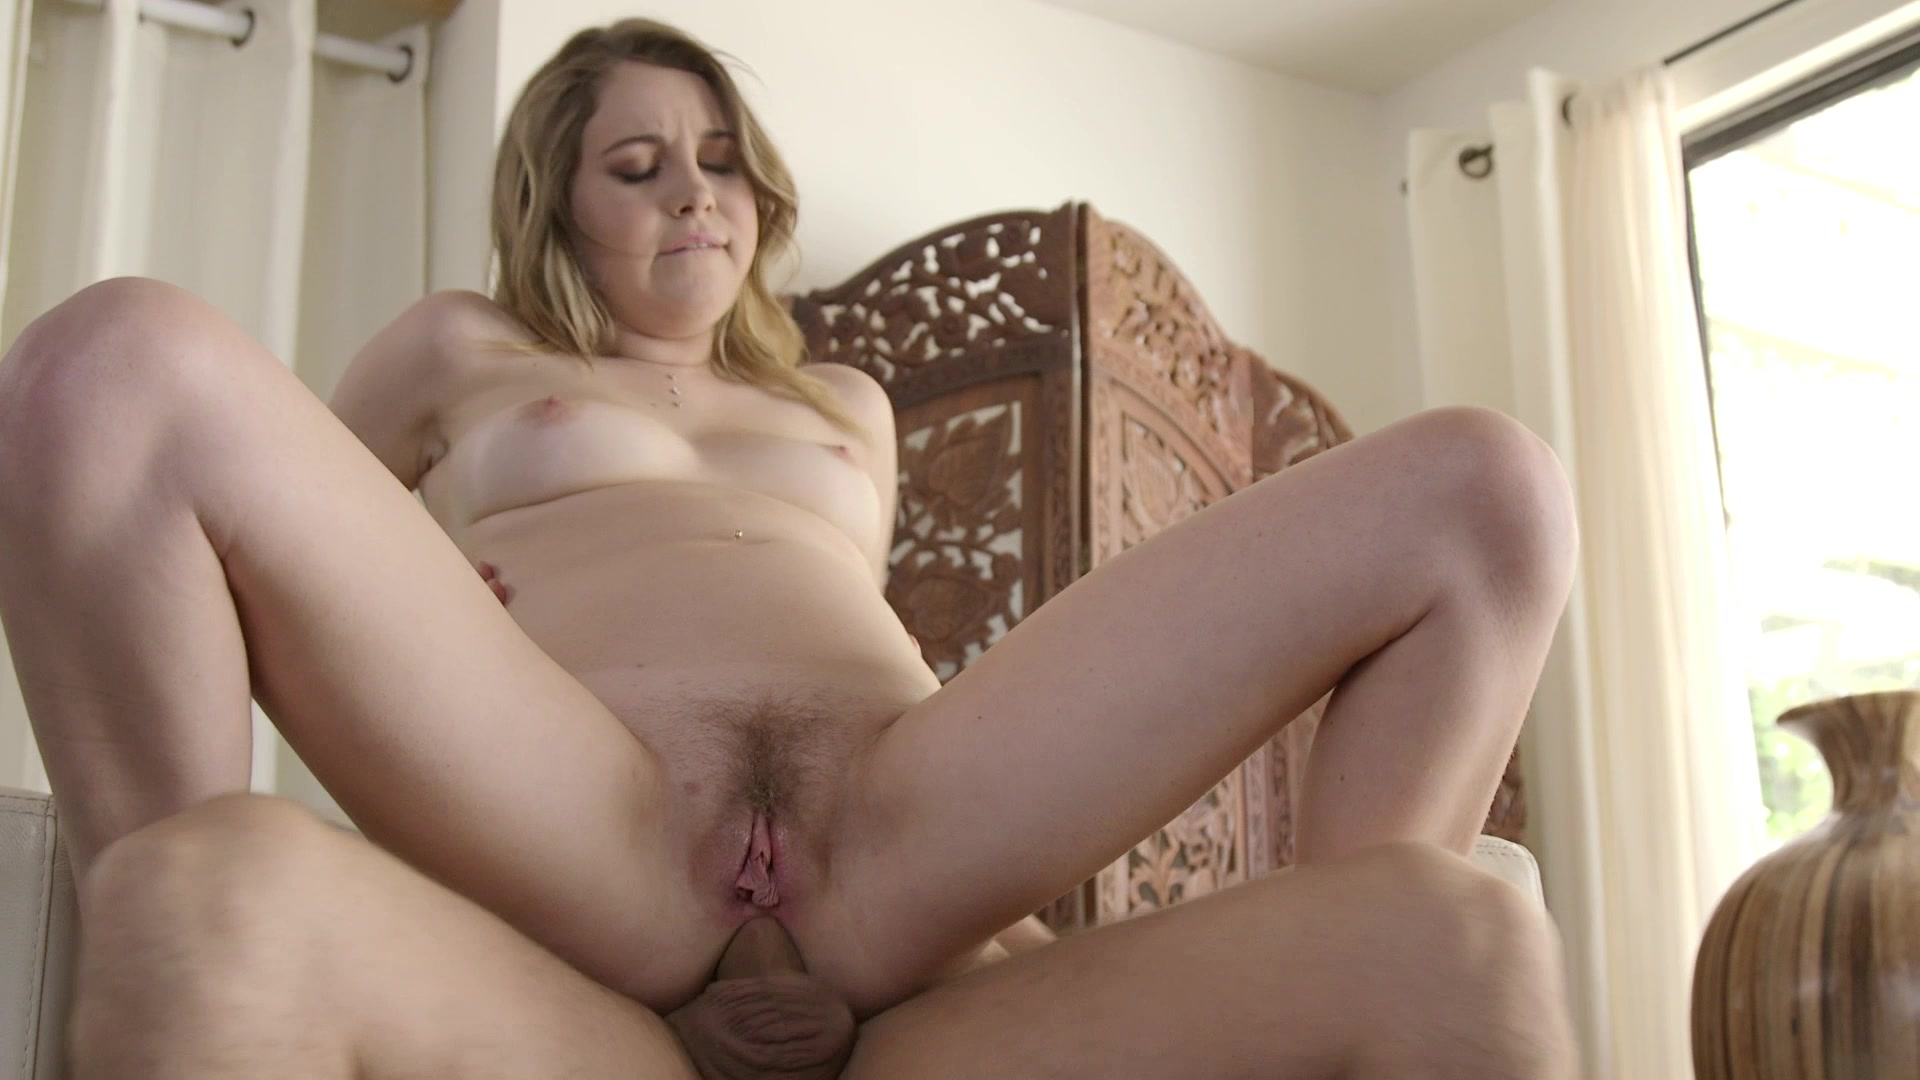 Anal sex in popular movies